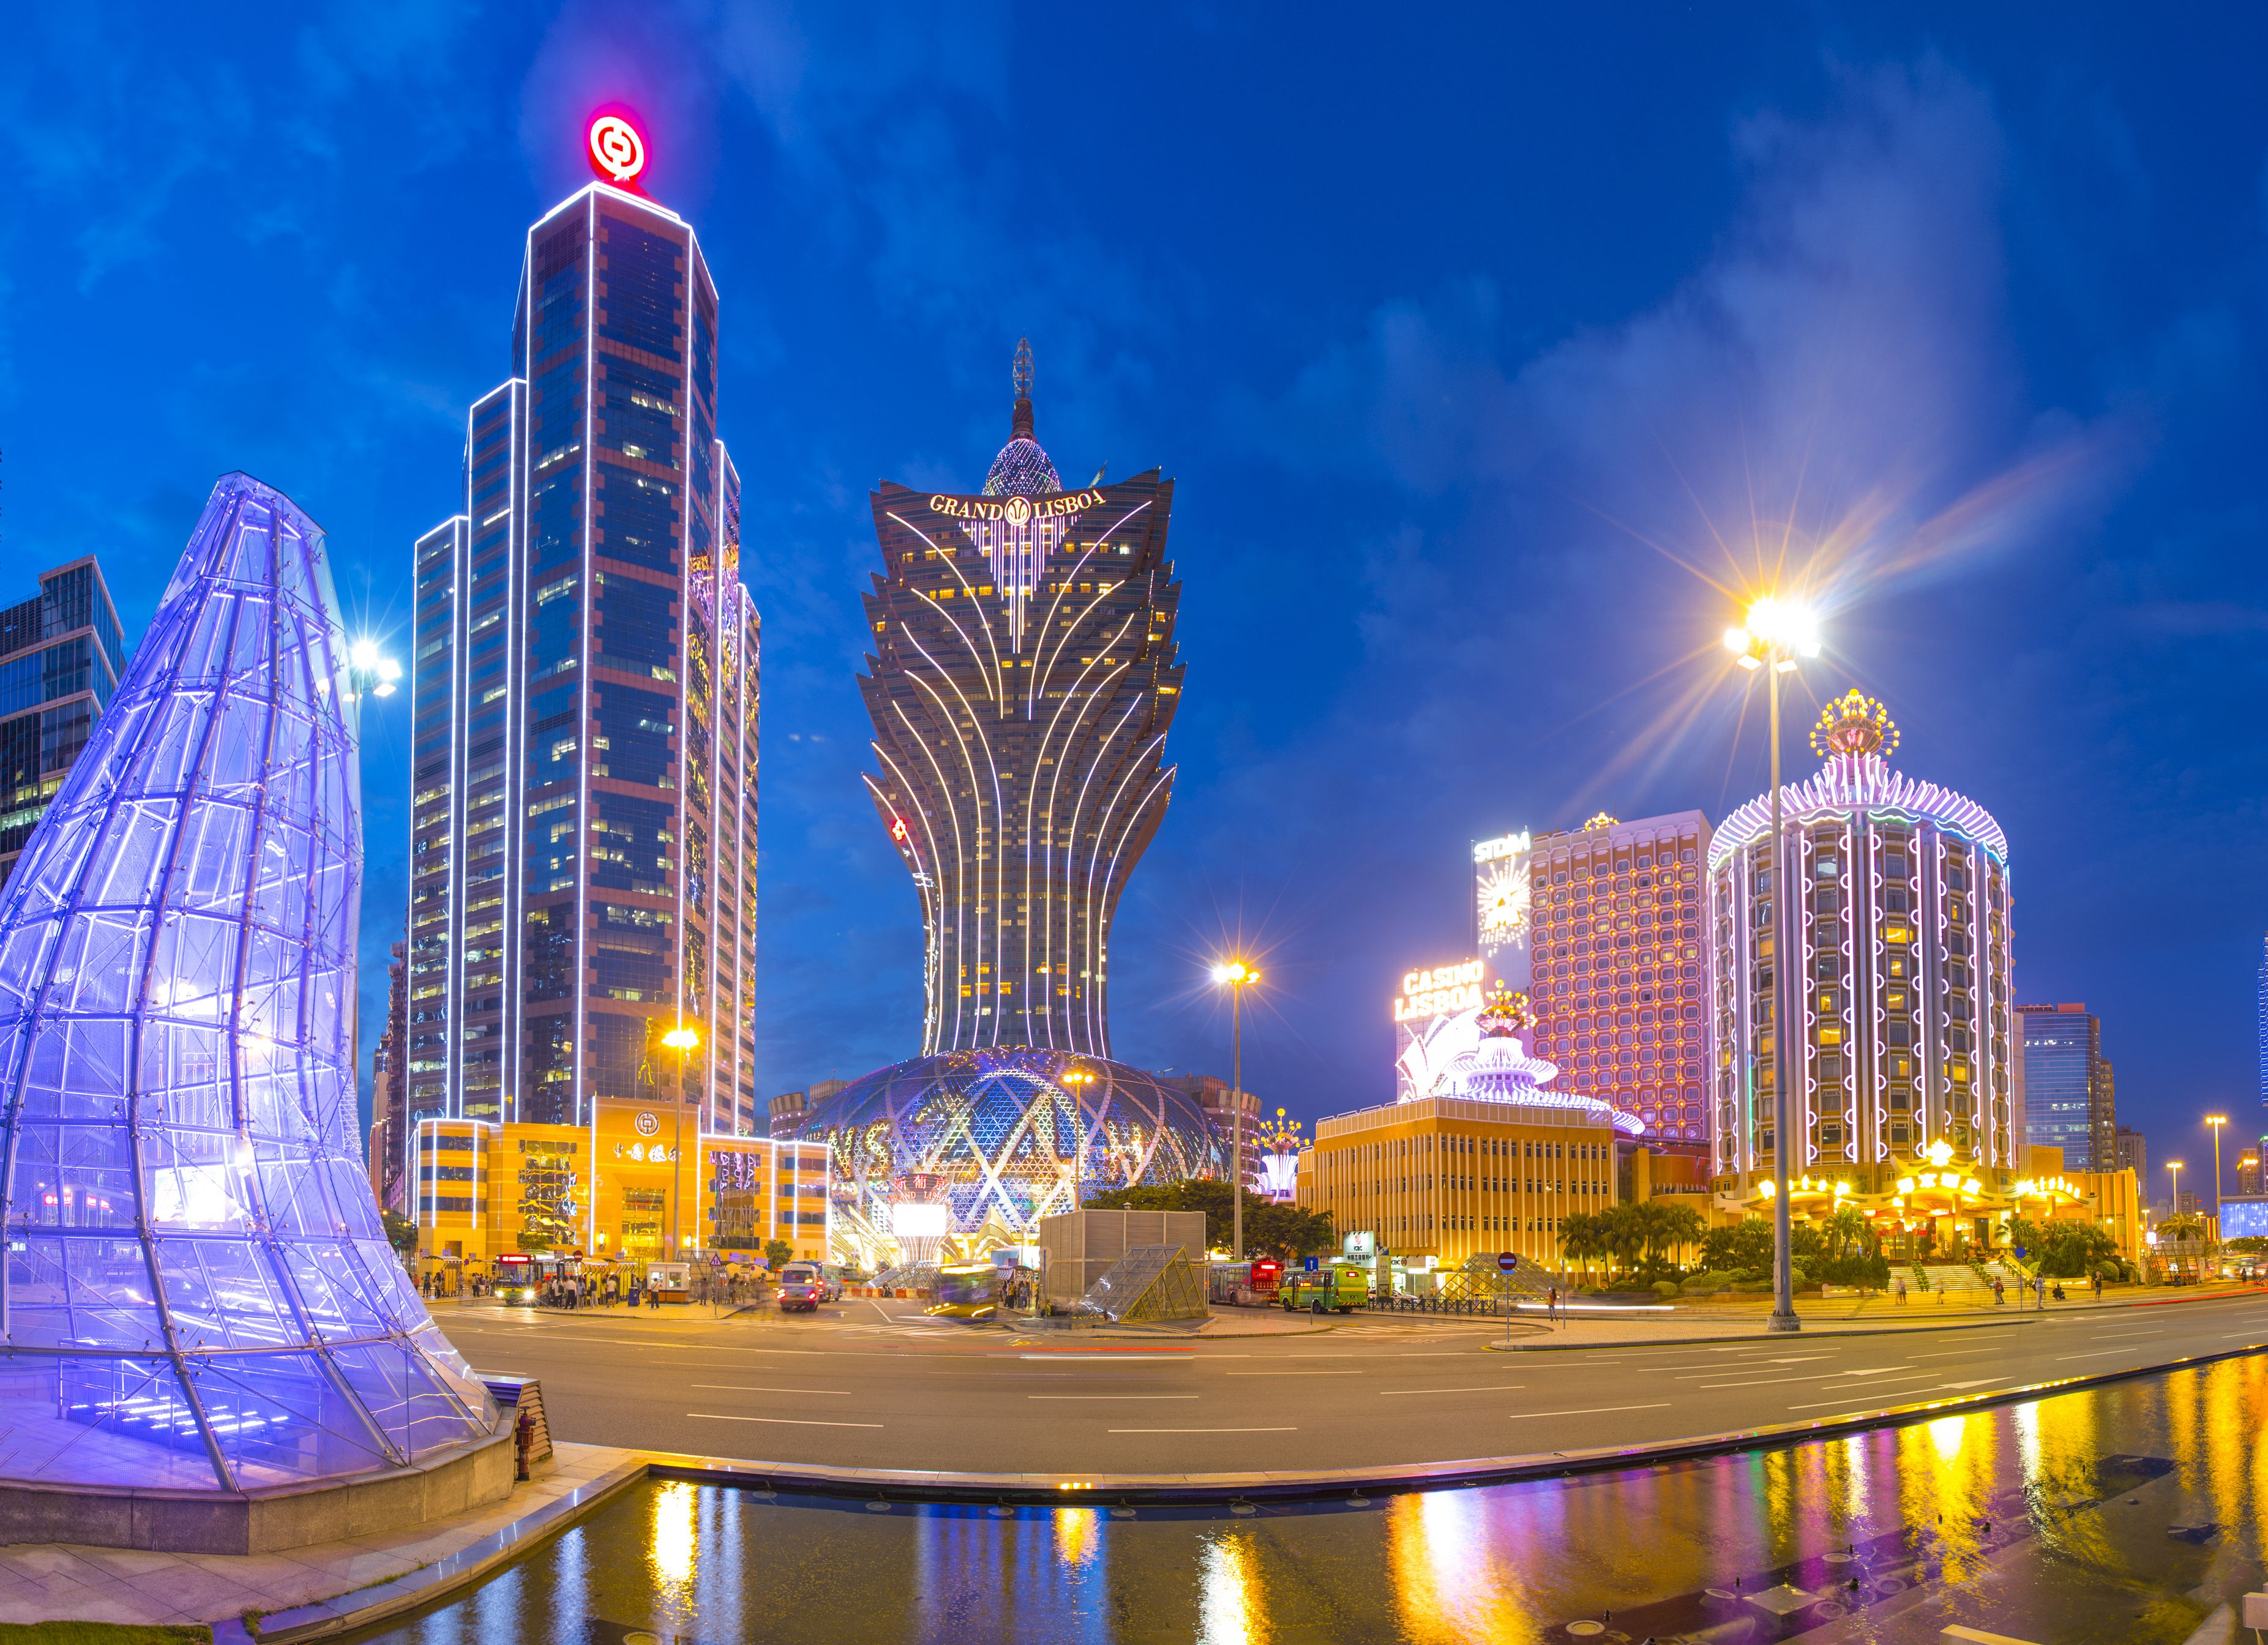 Casinos and commercial buildings at night, Macau